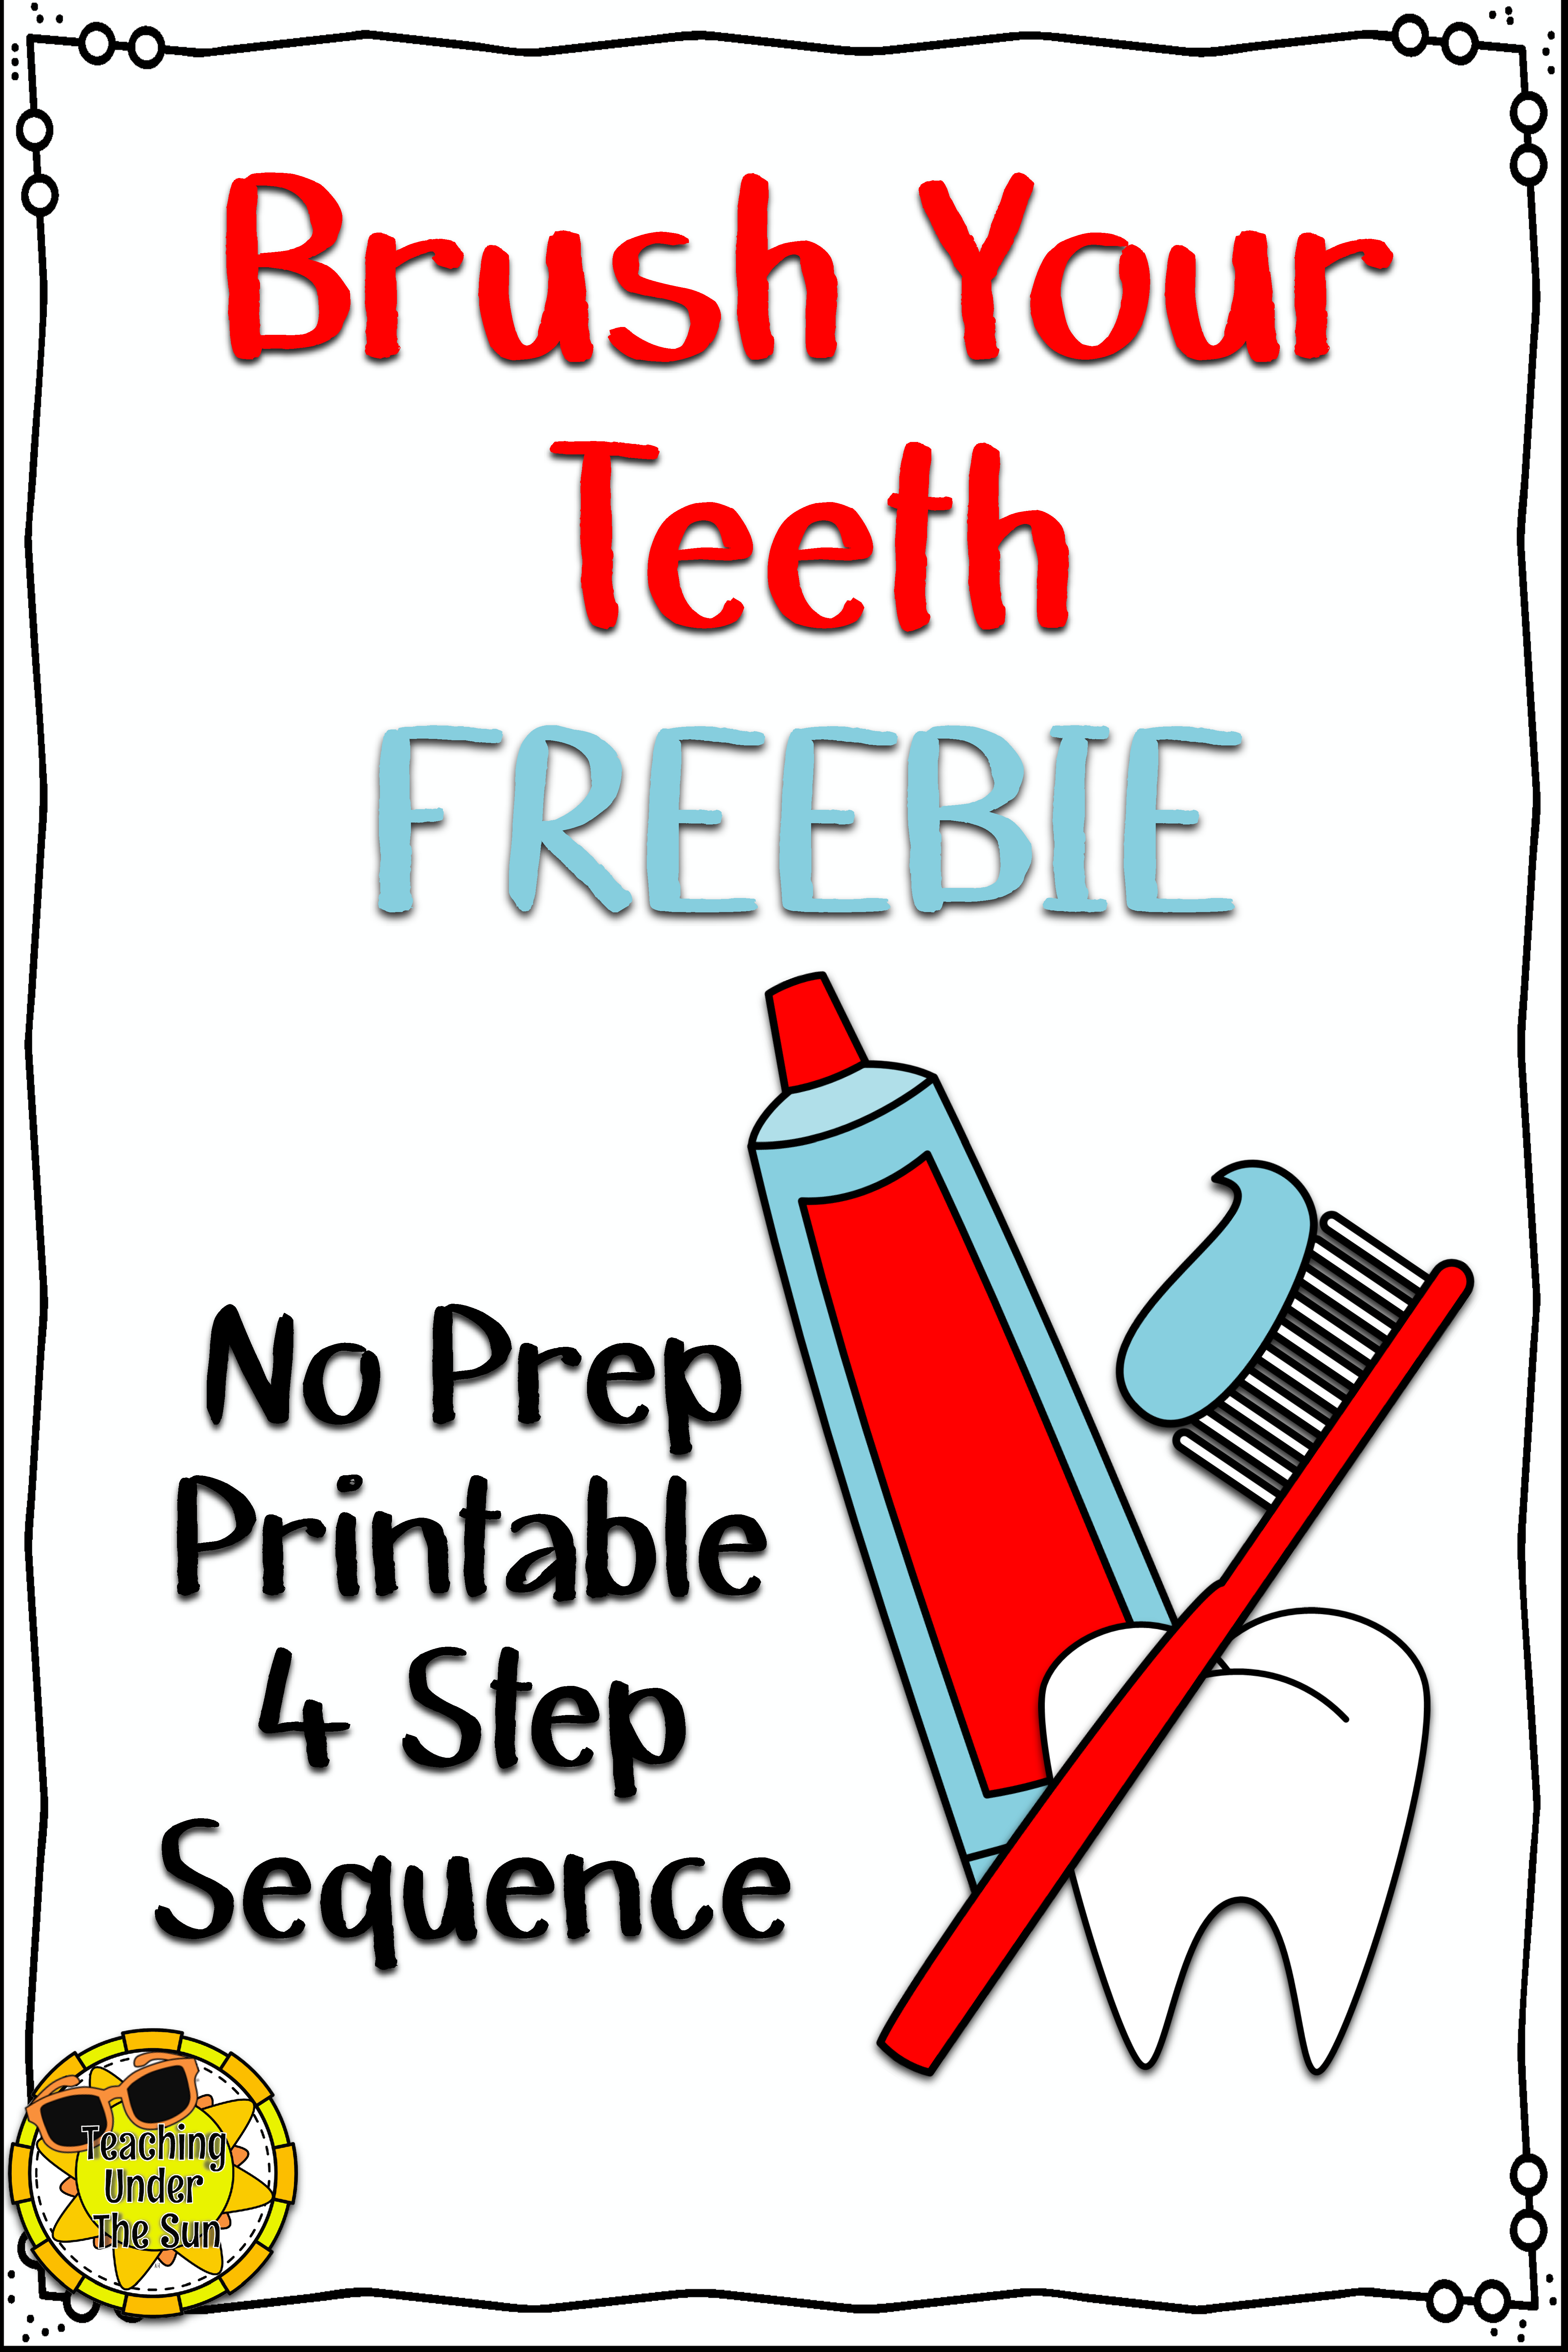 Teeth Brushing Sequence Dental Health Freebie No Prep